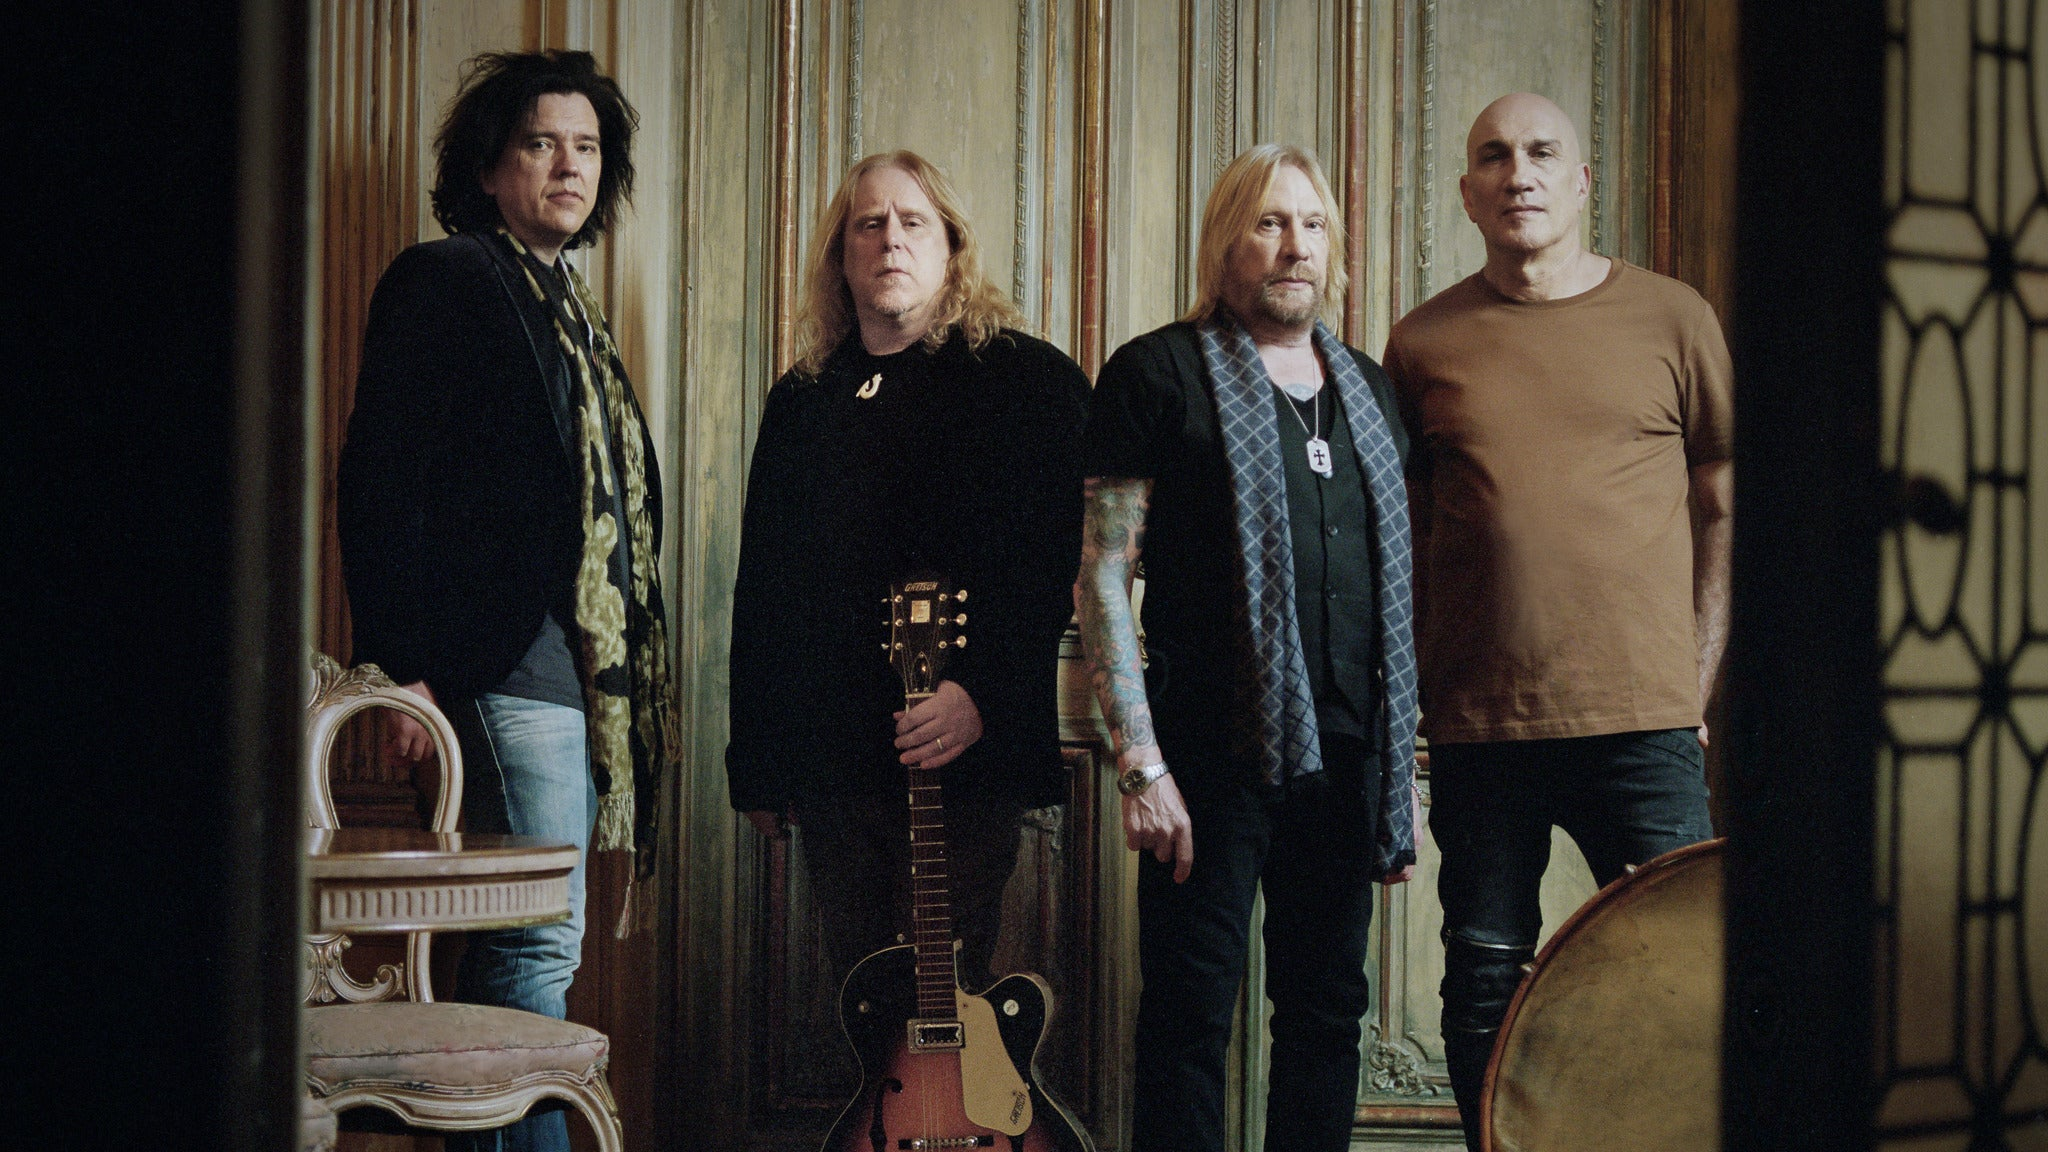 Gov't Mule's Dark Side Of The Mule + The Avett Brothers